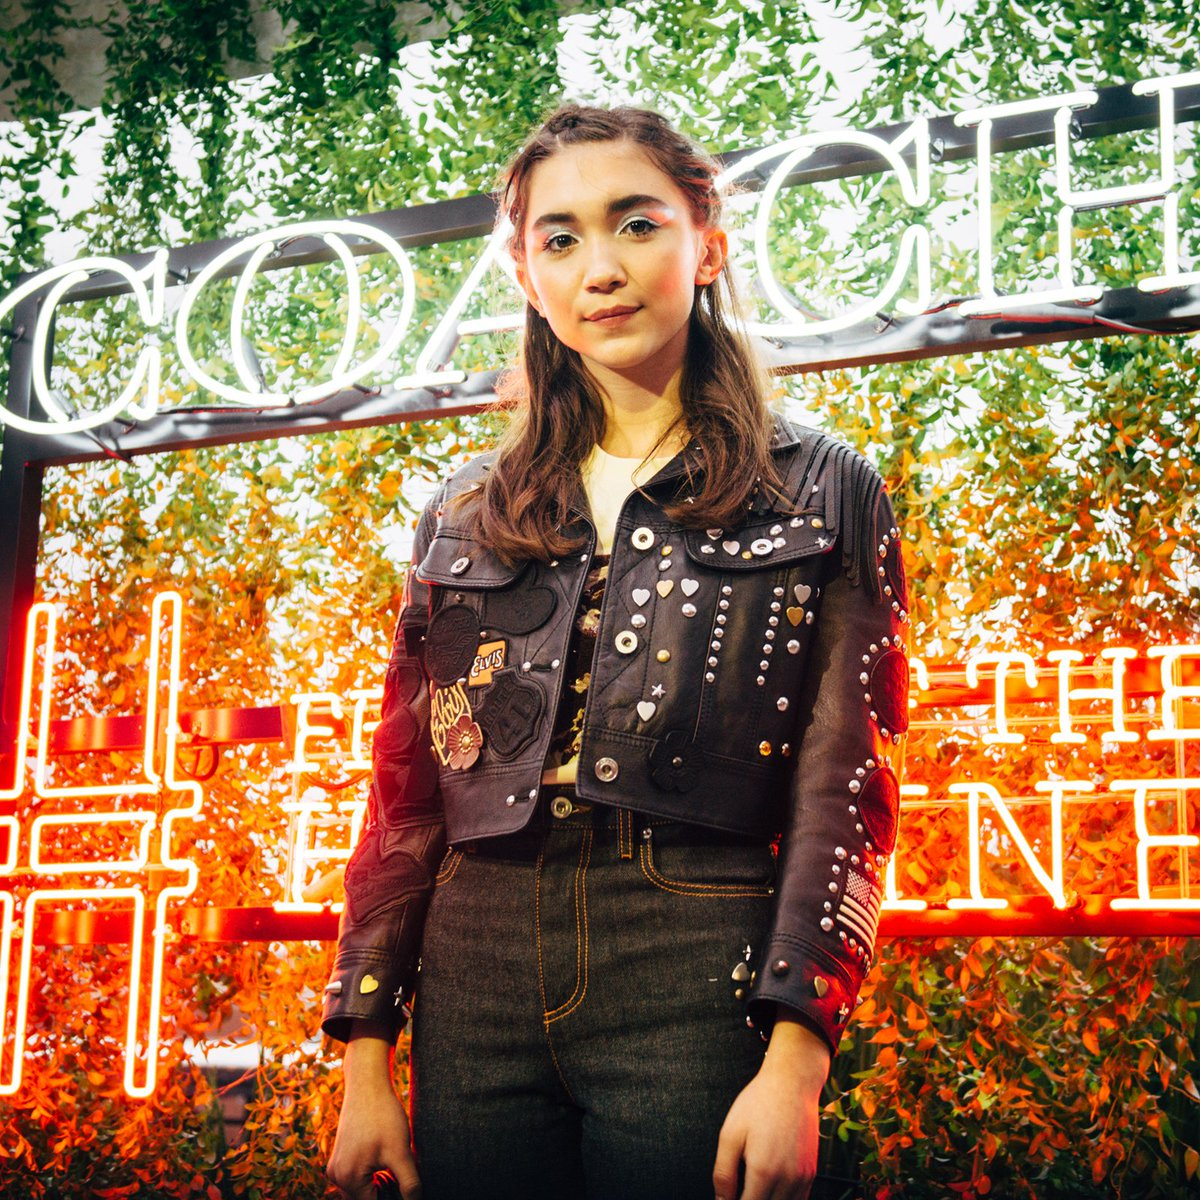 Actress #RowanBlanchard wears #CoachSpring2017 at last night's #CoachxHighline party. #CoachTheFragrance